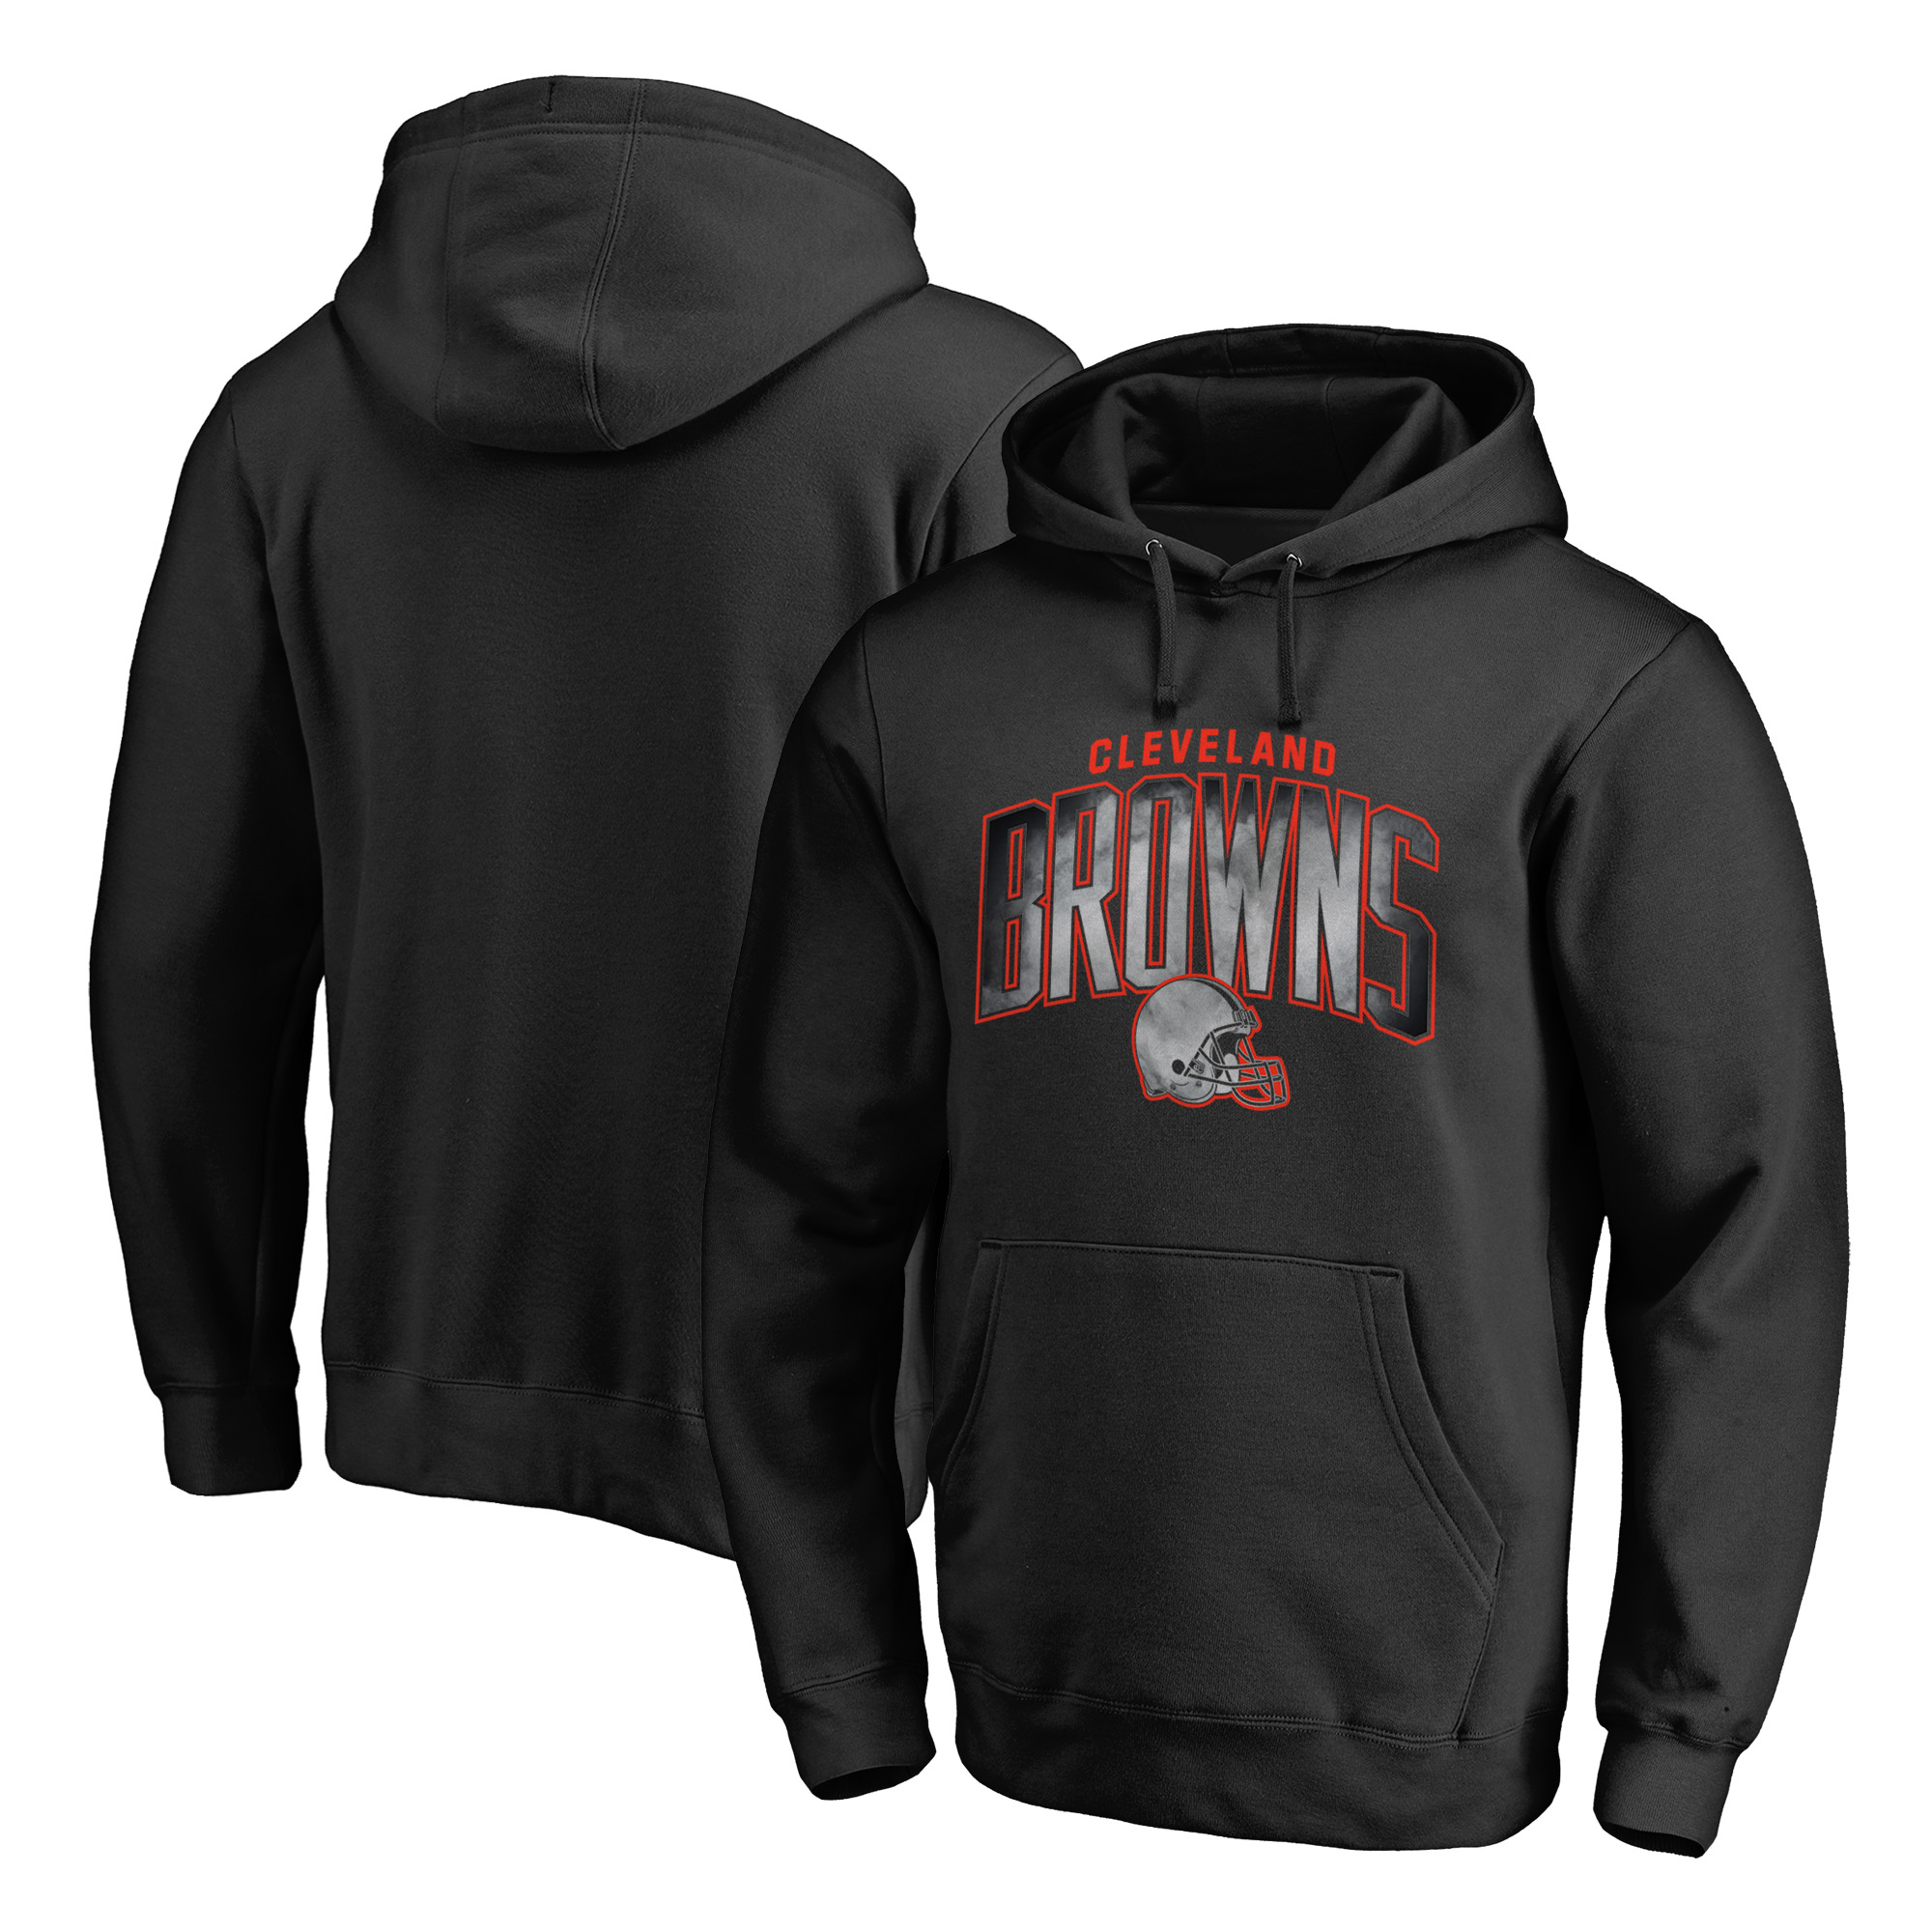 Cleveland Browns NFL Pro Line by Fanatics Branded Big & Tall Arch Smoke Pullover Hoodie - Black - 4XB